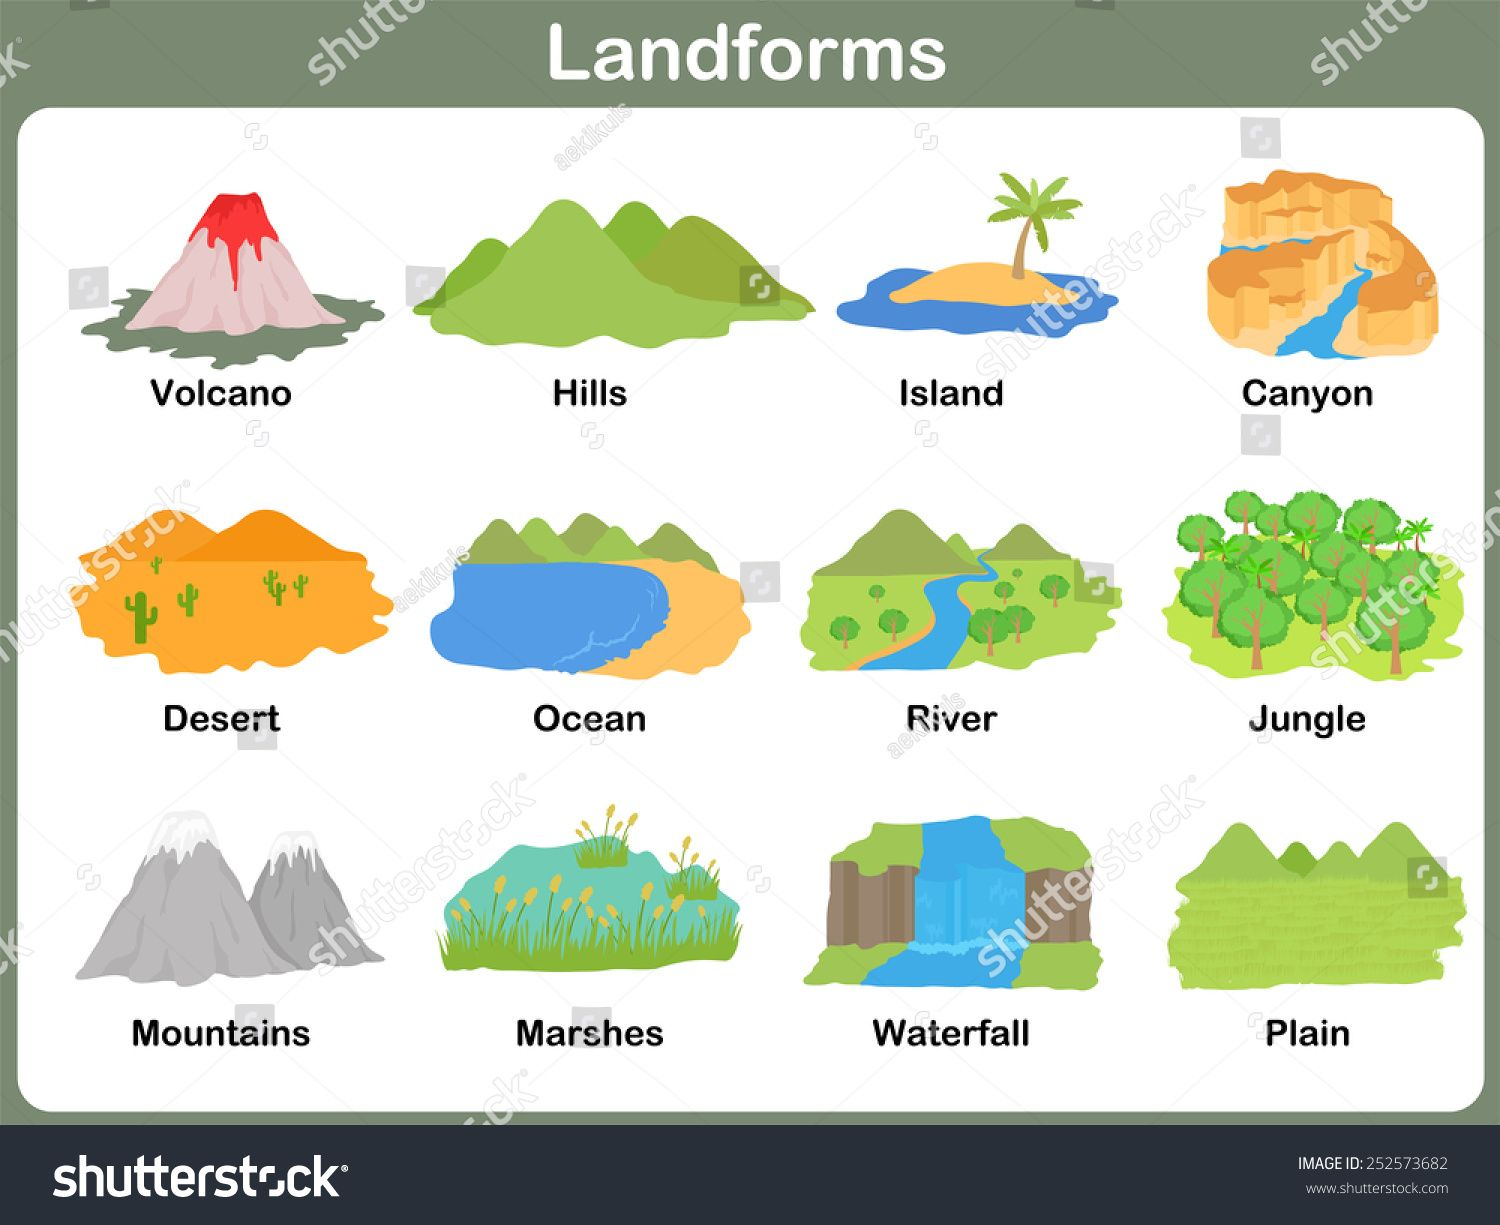 Landforms Worksheets For Kids